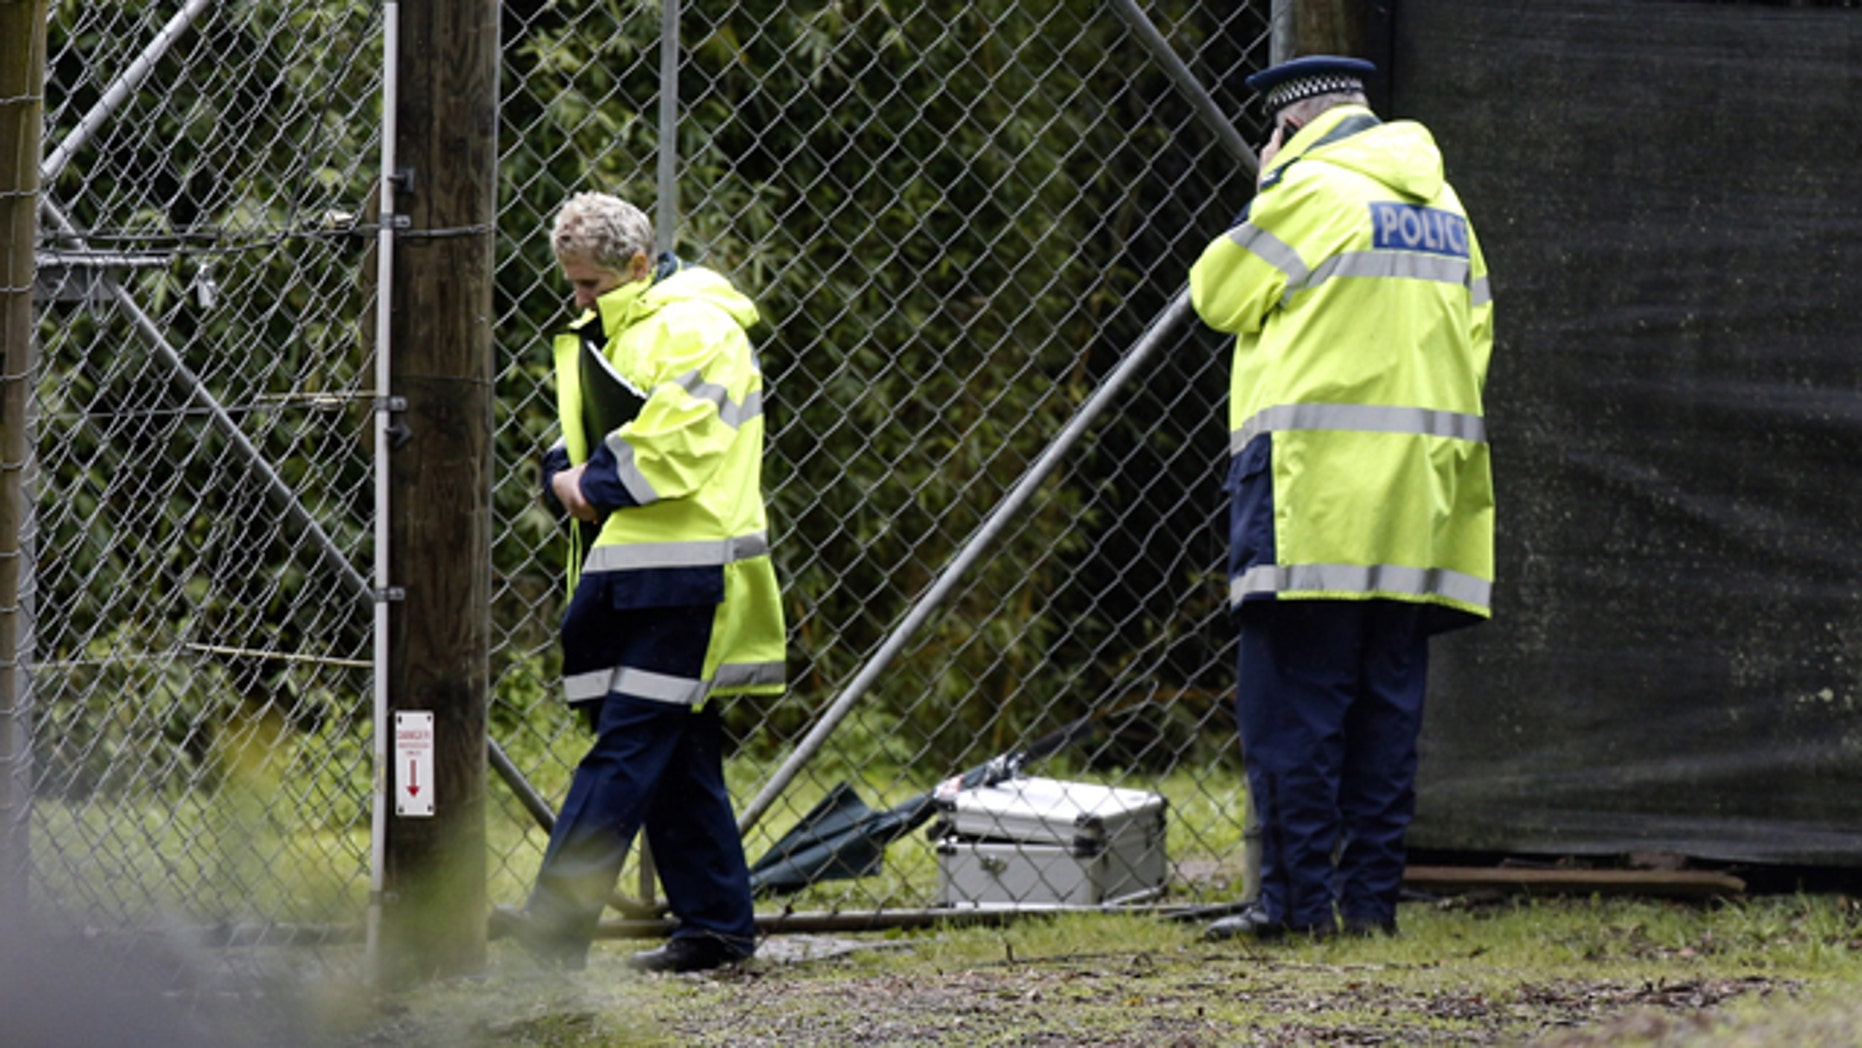 Sept. 20, 2015: Police stand at the shut gates at the Hamilton (New Zealand) Zoo after a female zookeeper was killed by one of its tigers. Police said the woman died at the scene, and asked the zoo to order all visitors to leave and close its doors until Thursday. (Nick Reed/New Zealand Herald via AP).